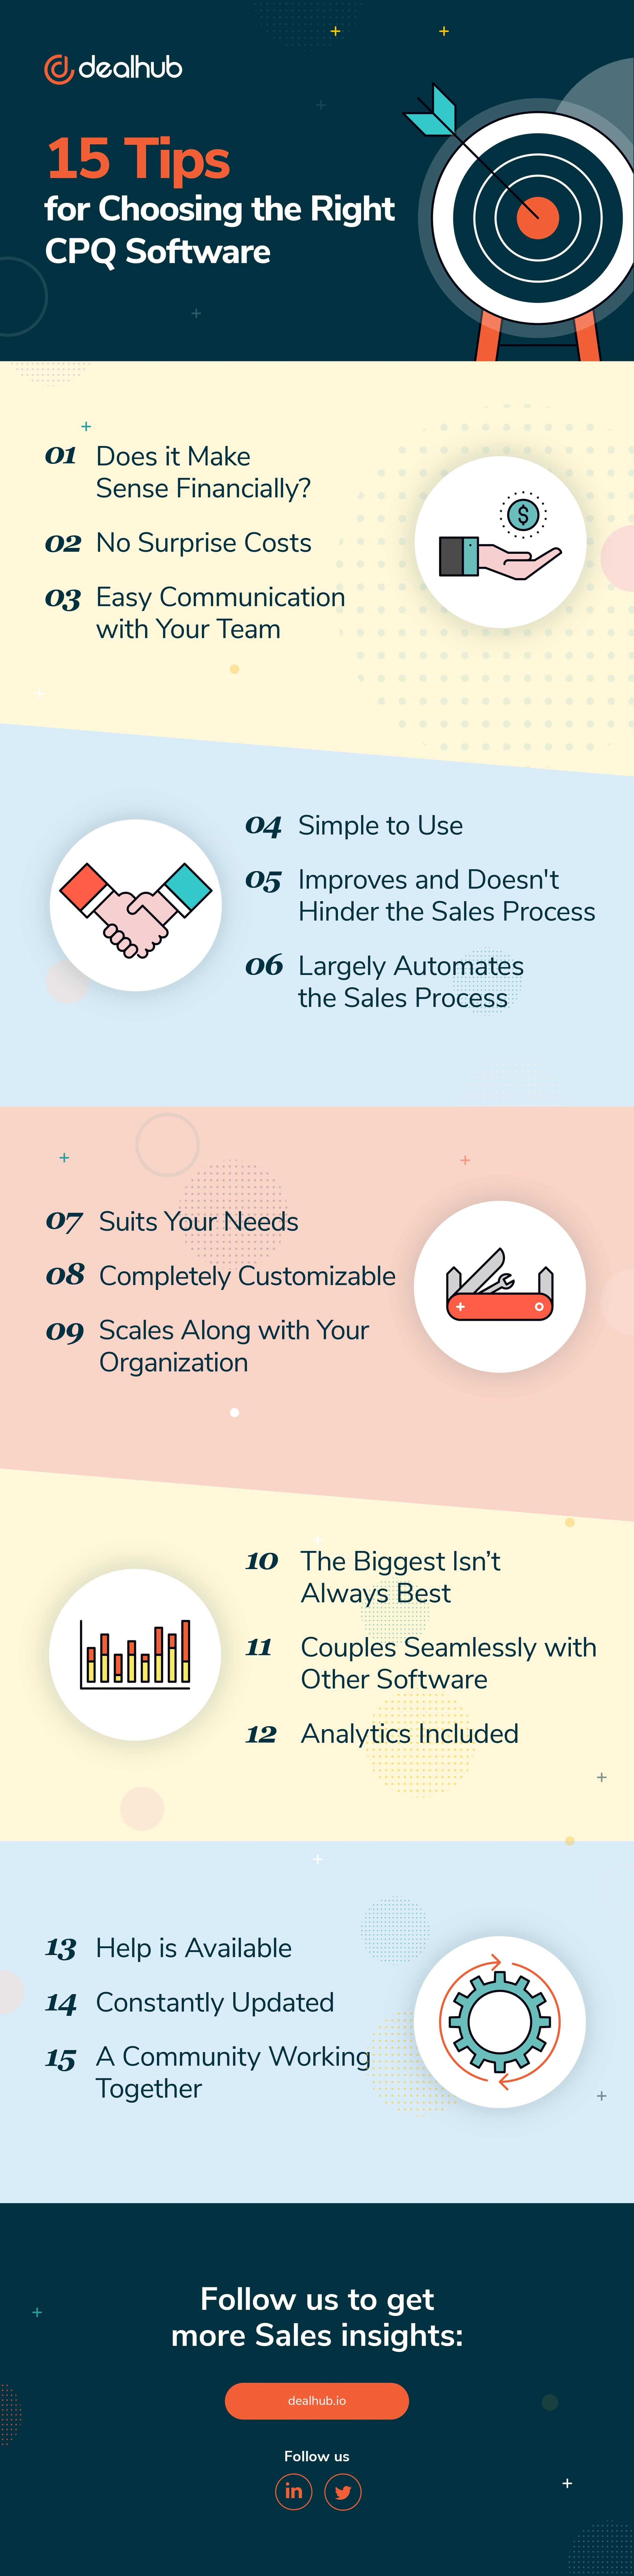 15 tips for choosing the right CPQ infographic